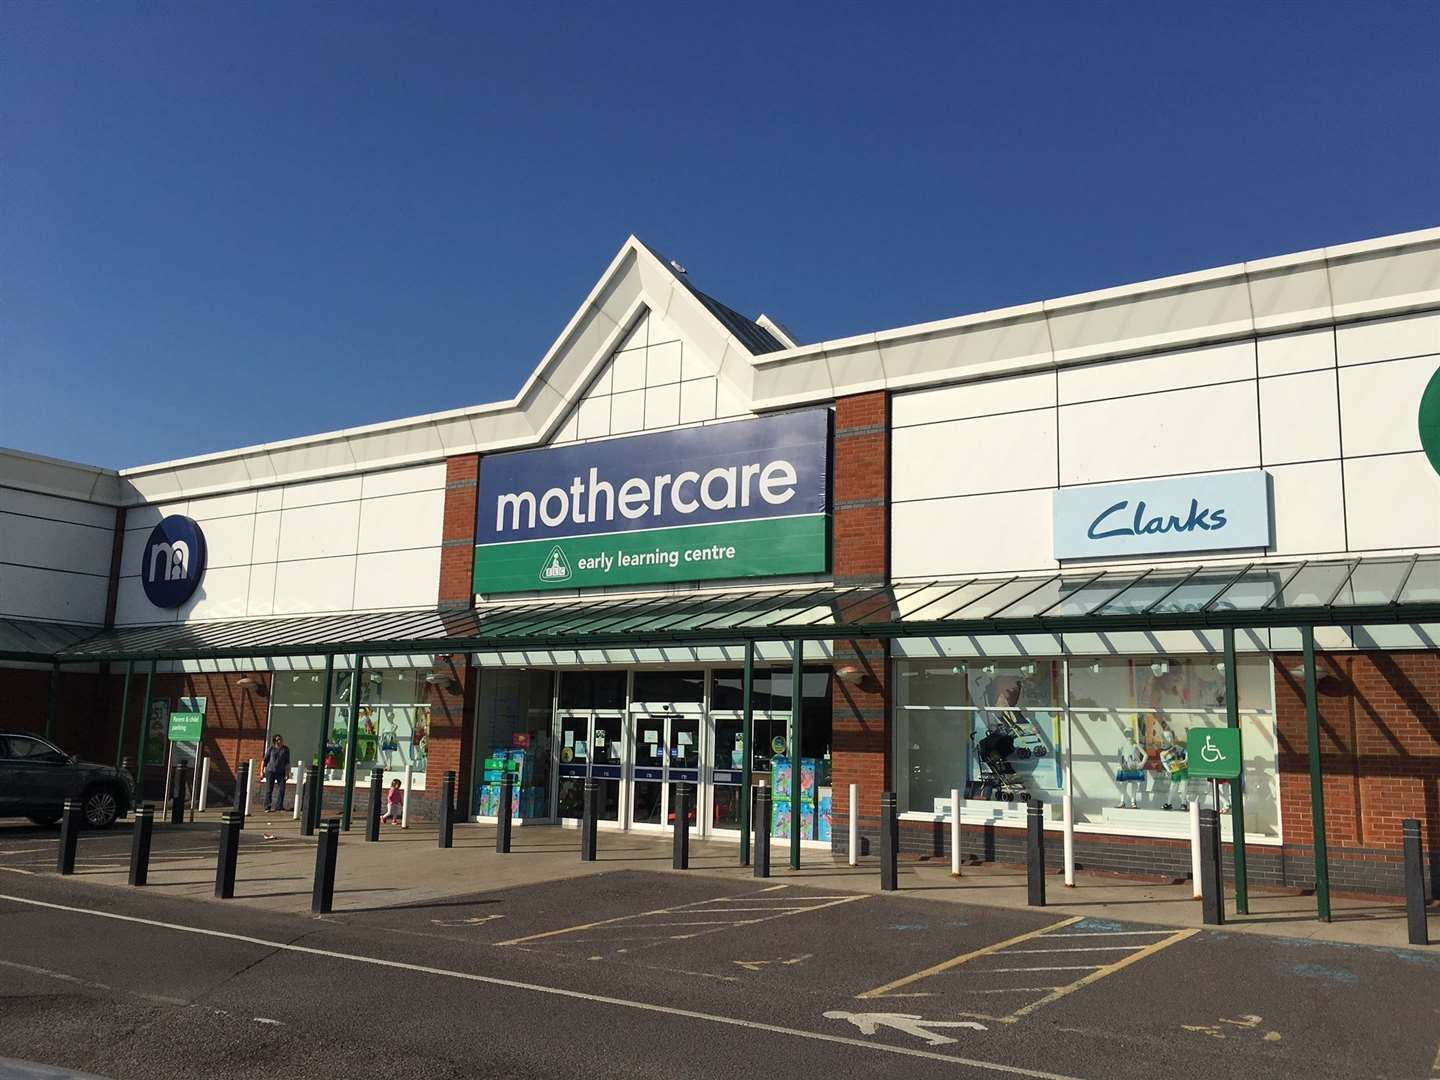 Mothercare in Canterbury is one of those stores holding a closing down sale